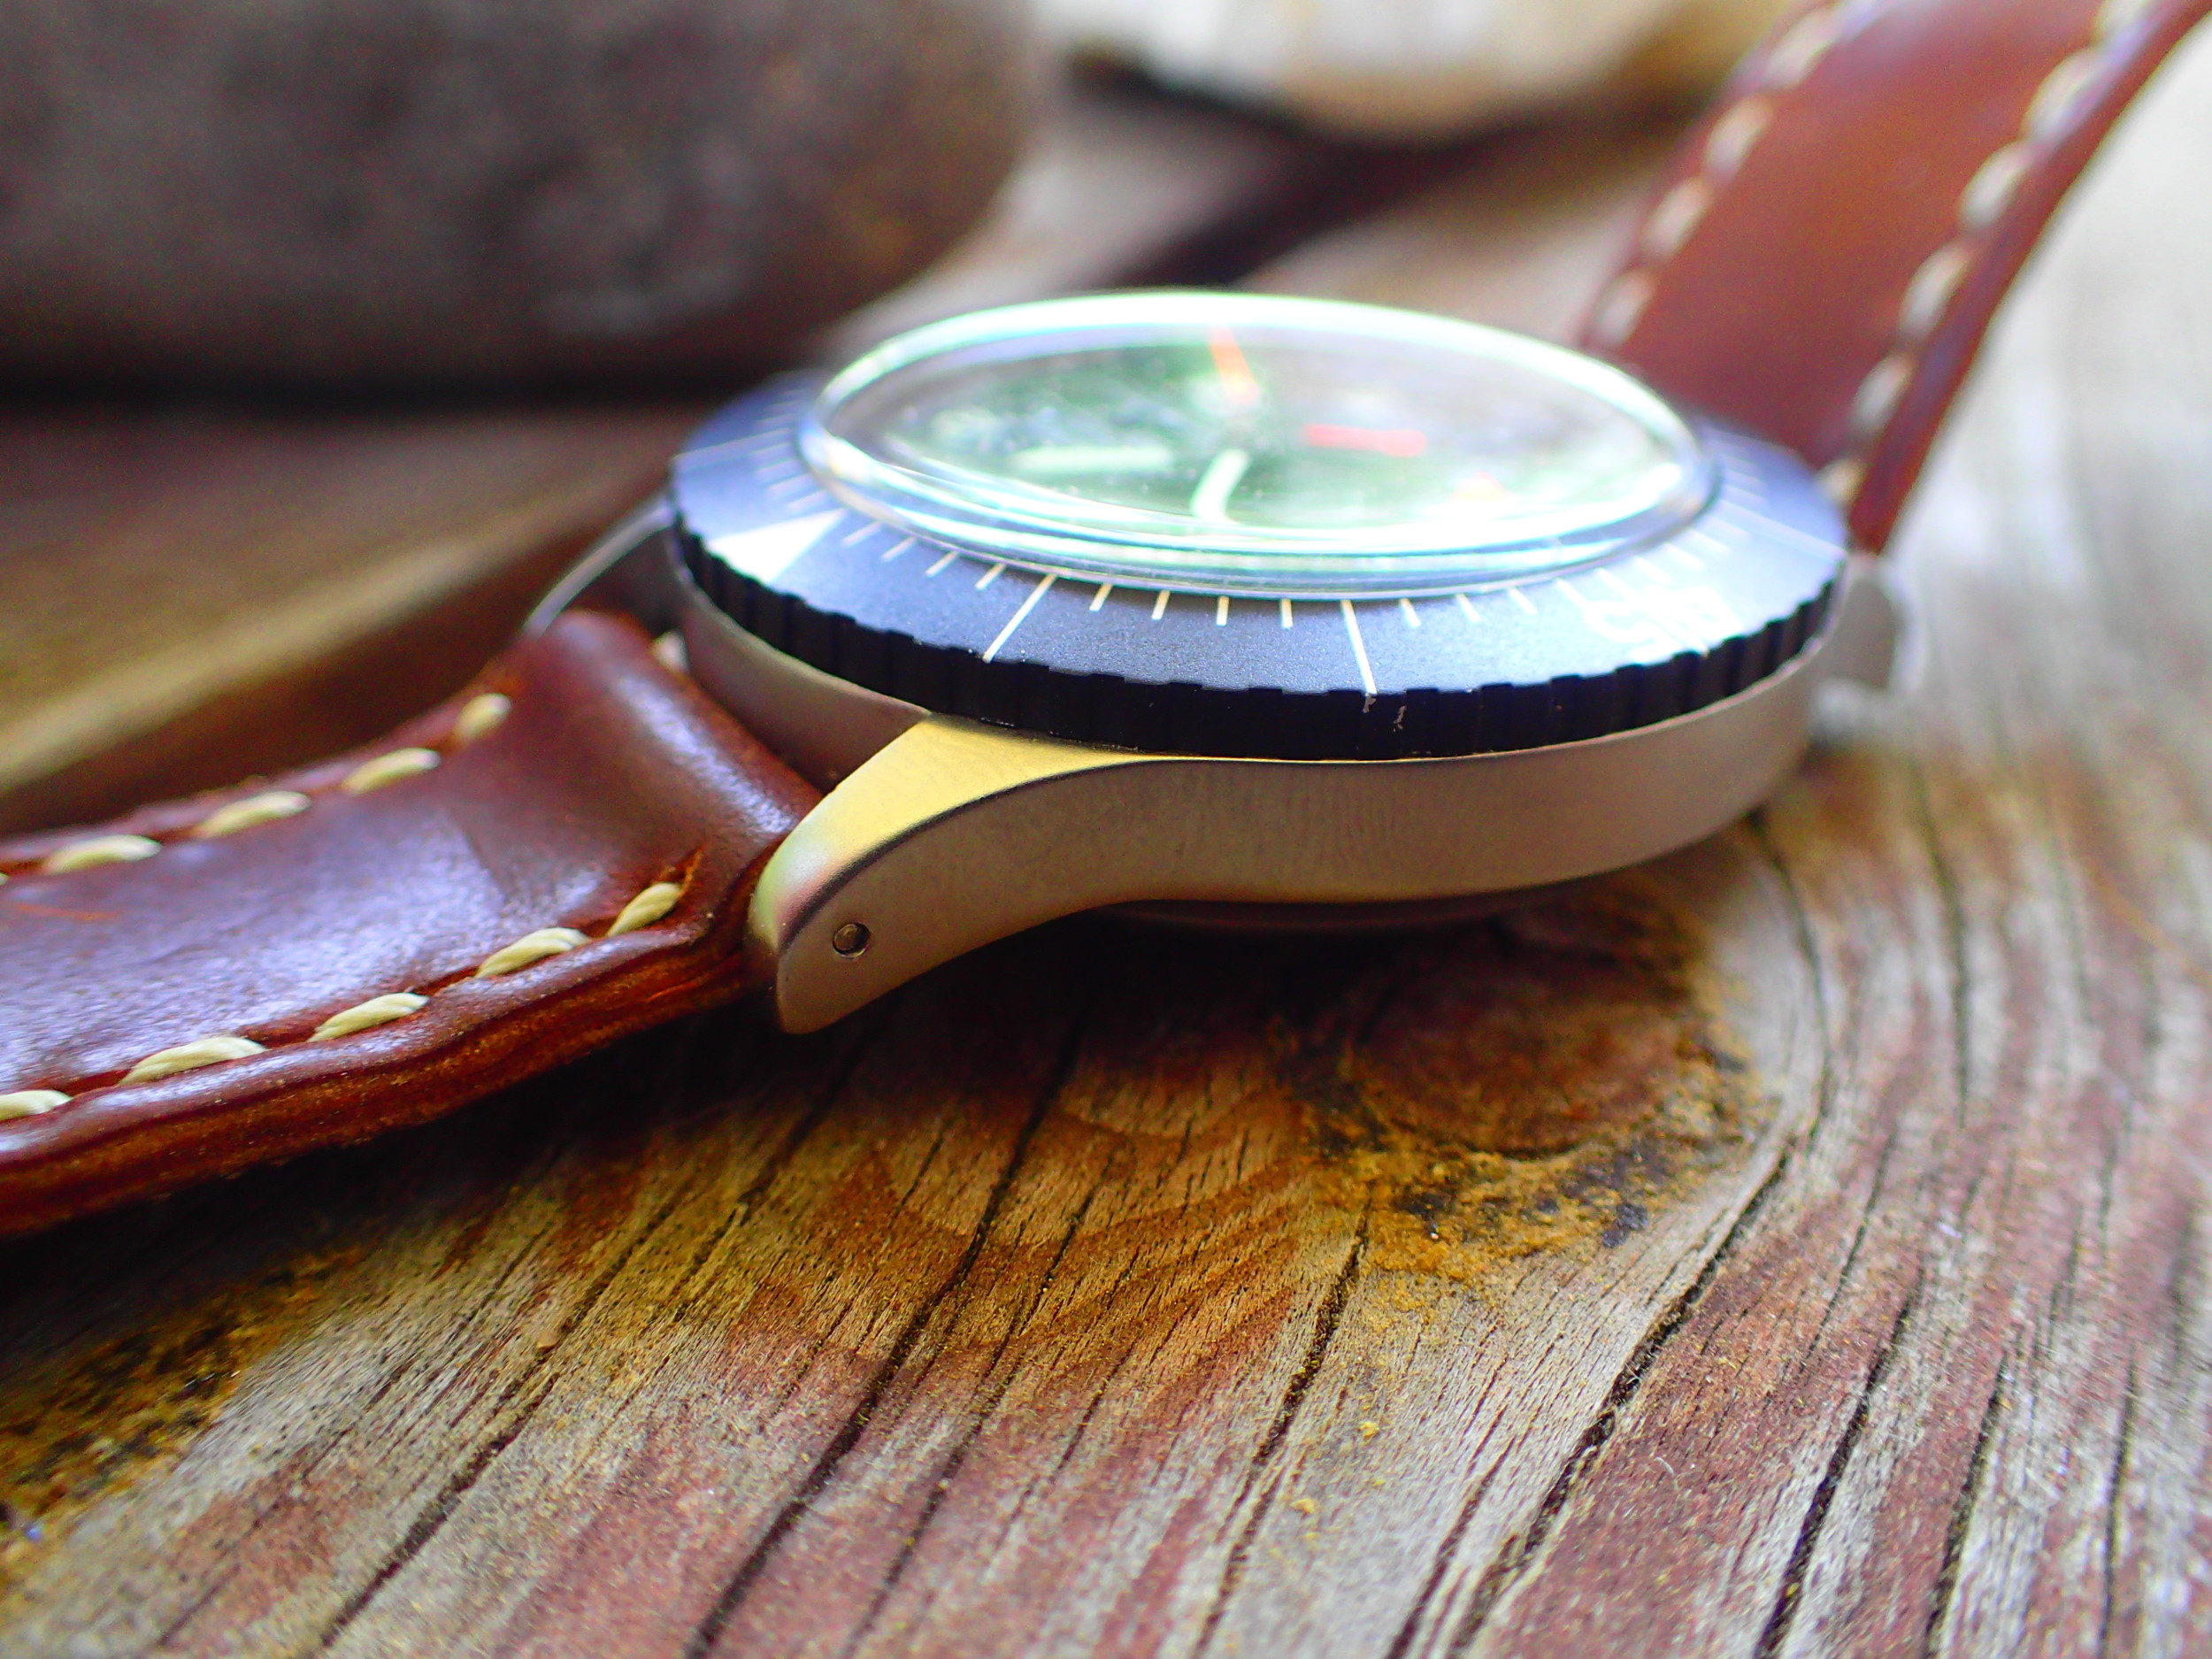 Viewed from any angle, this watch is design perfection.